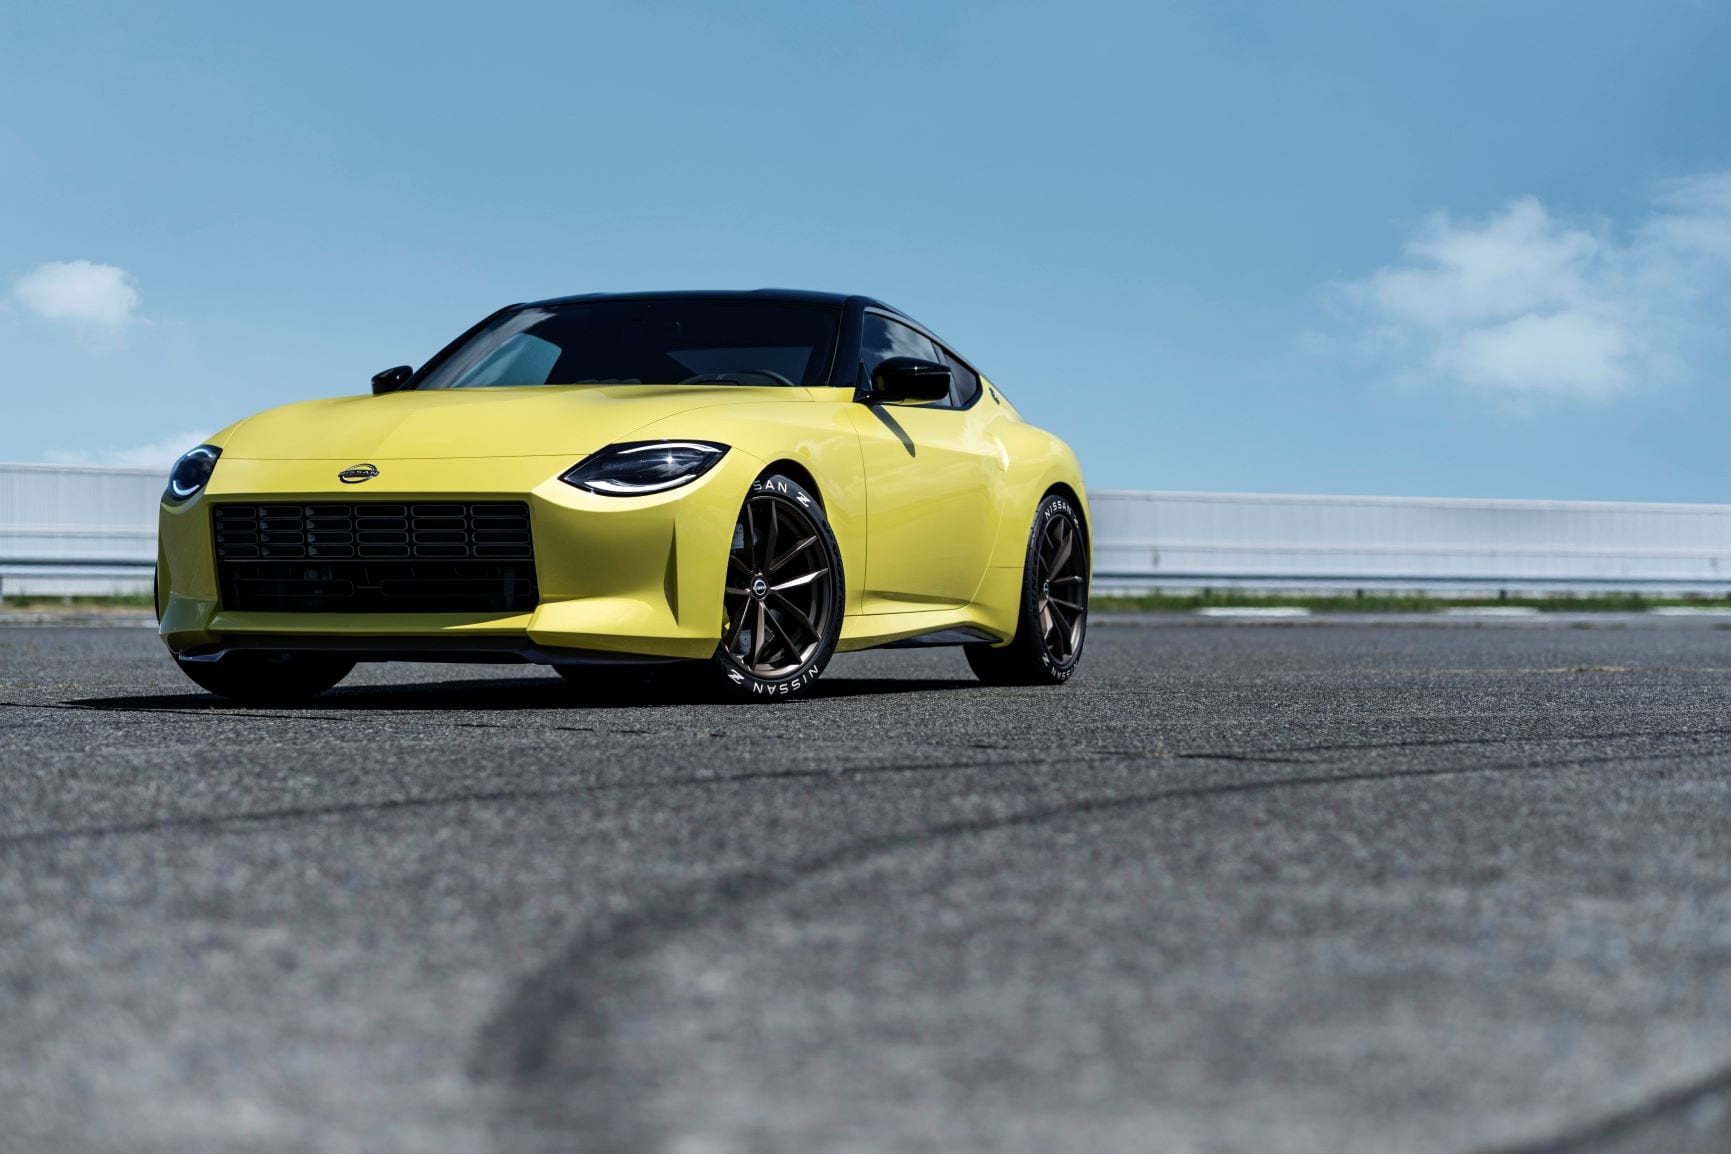 A frontal view of the Nissan Proto Z in yellow.